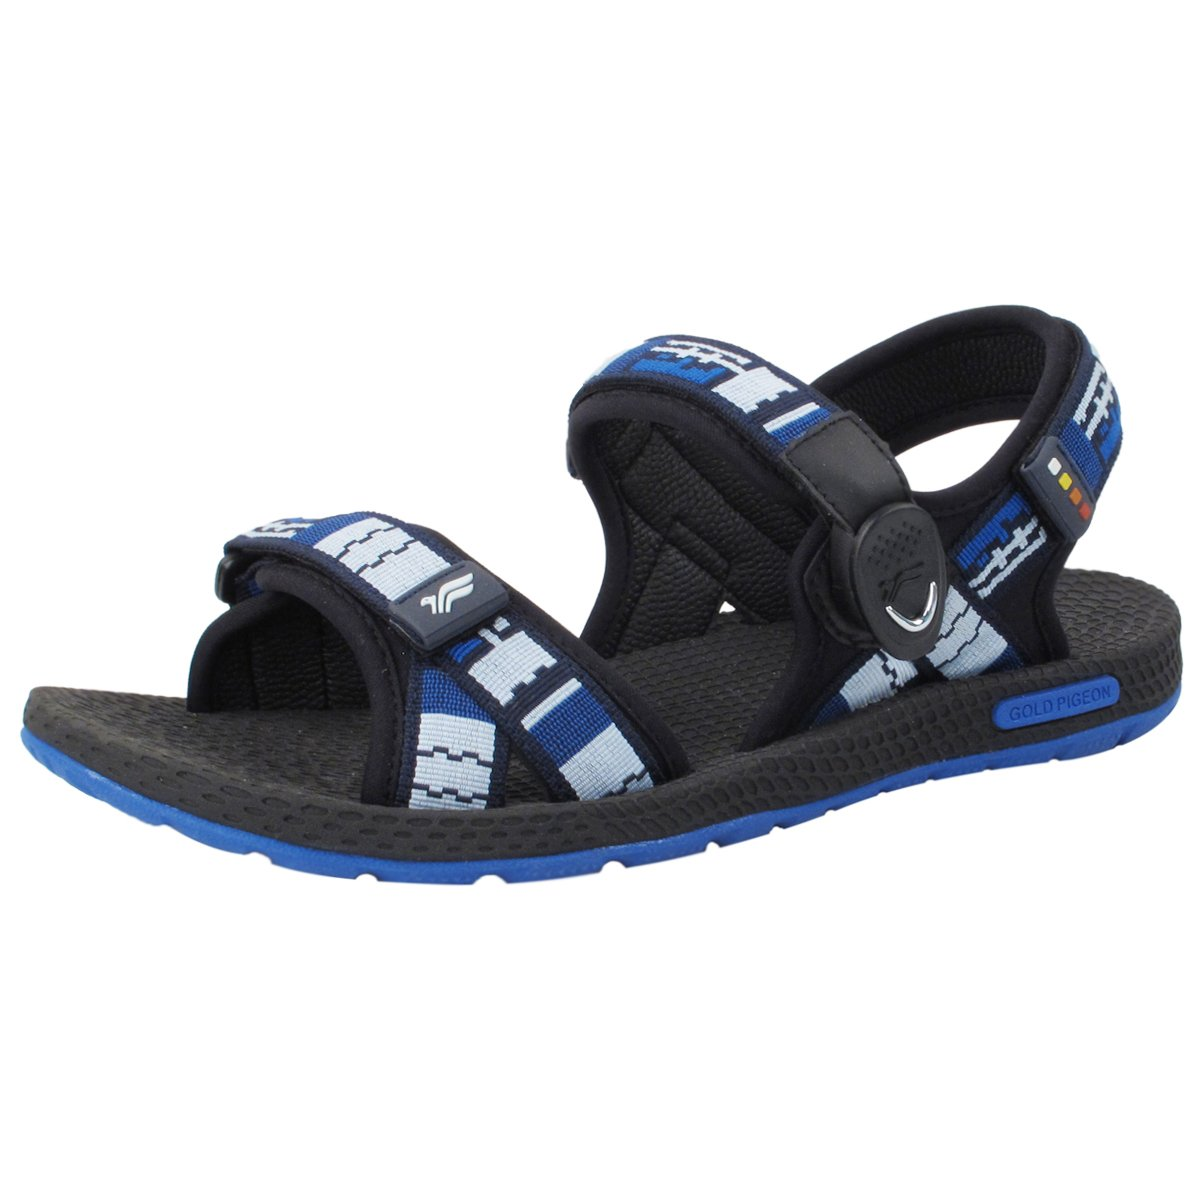 Gold Pigeon Shoes GP5931 Light Weight Adjustable Outdoor Water Sling Back Sandals for Men & Women B0796NB4W8 EU44: Men 11/11.5 (292.4mm)|8658 Blue With Snap Lock